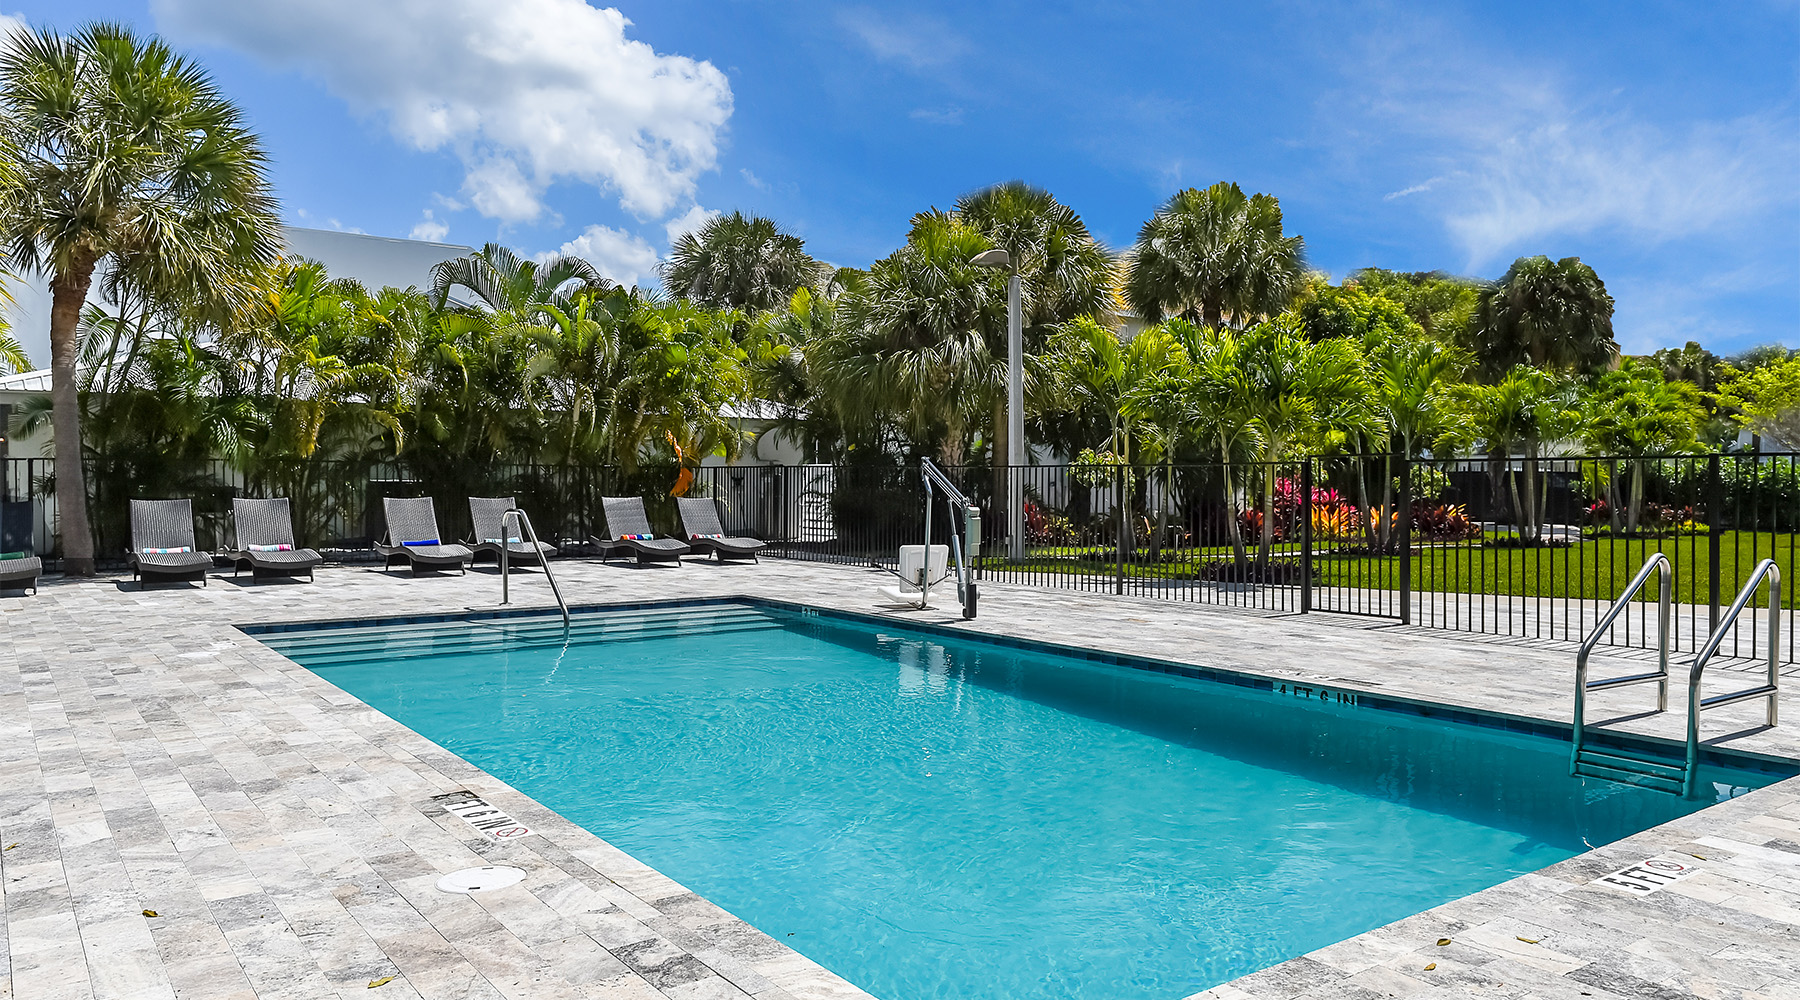 Beachway Therapy Center Review / Rating - West Palm Beach